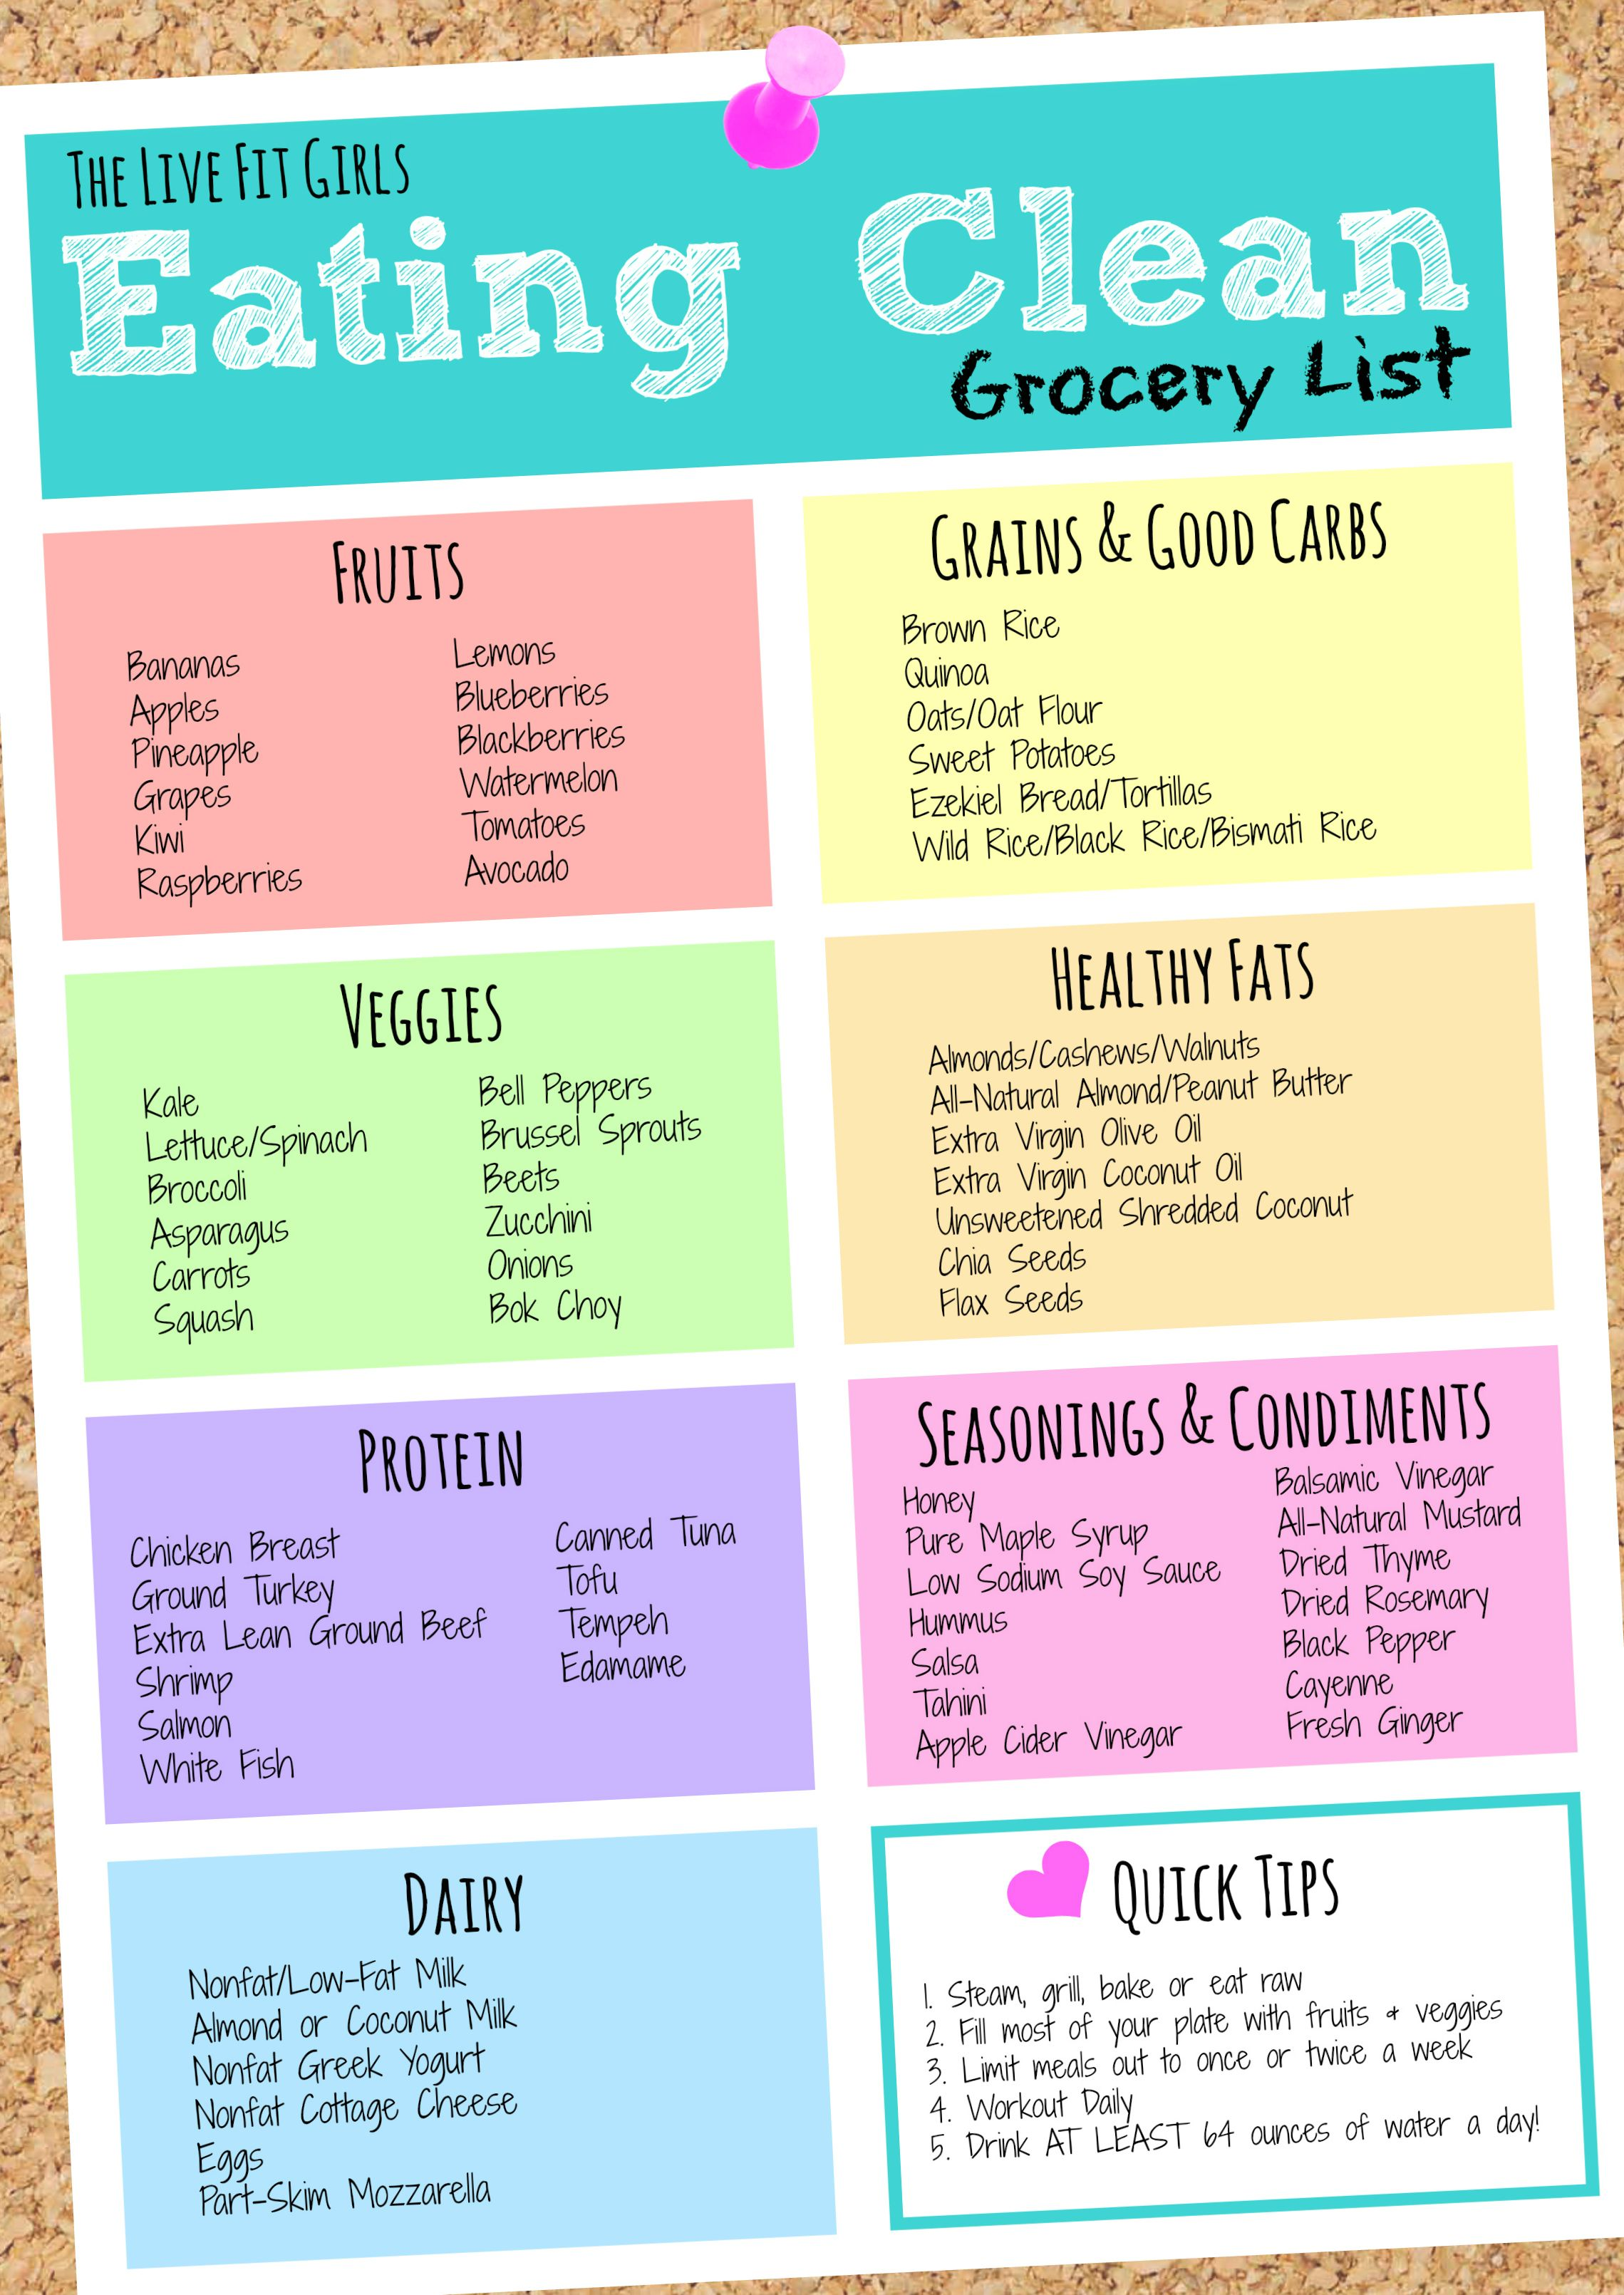 Daily diet for good health - Basics Of Meal Prepping From Planning Grocery Shopping Recipes And More Food